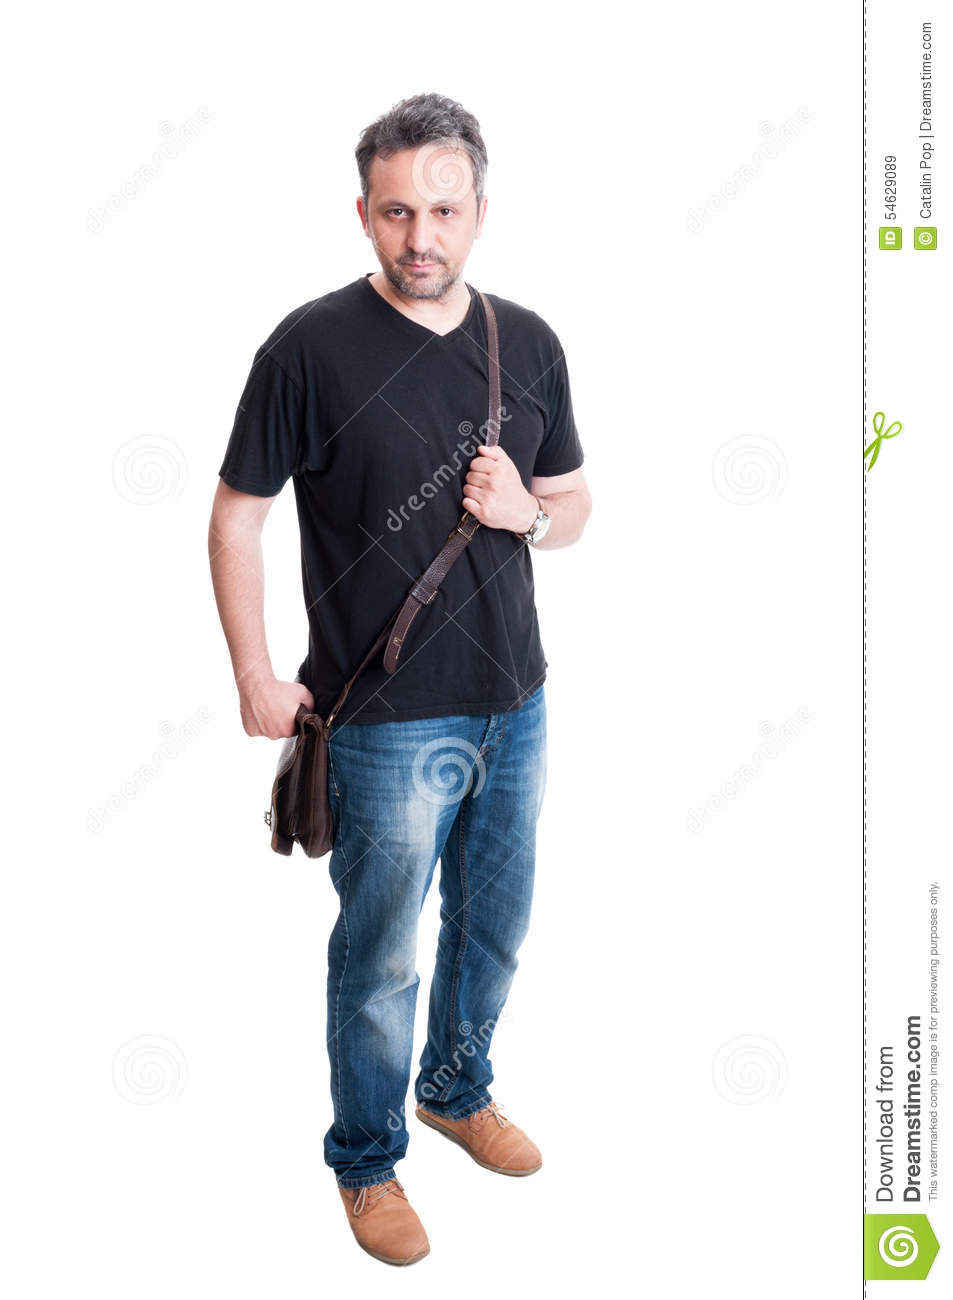 Man Posing With Jeans, Black T-shirt And Leather Bag Stock Photo ...